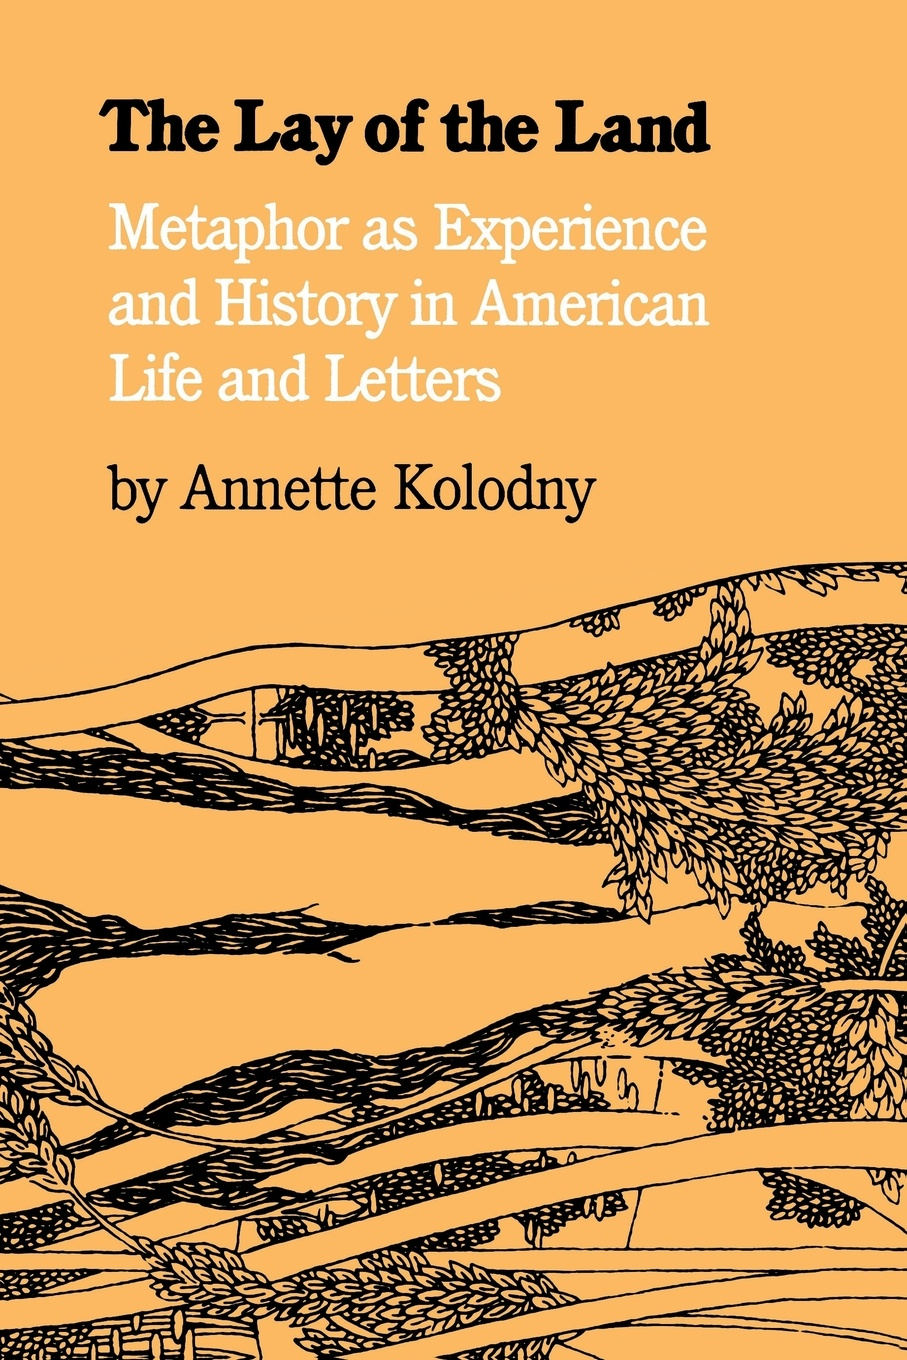 цена Annette Kolodny The Lay of the Land. Metaphor as Experience and History in American Life and Letters онлайн в 2017 году